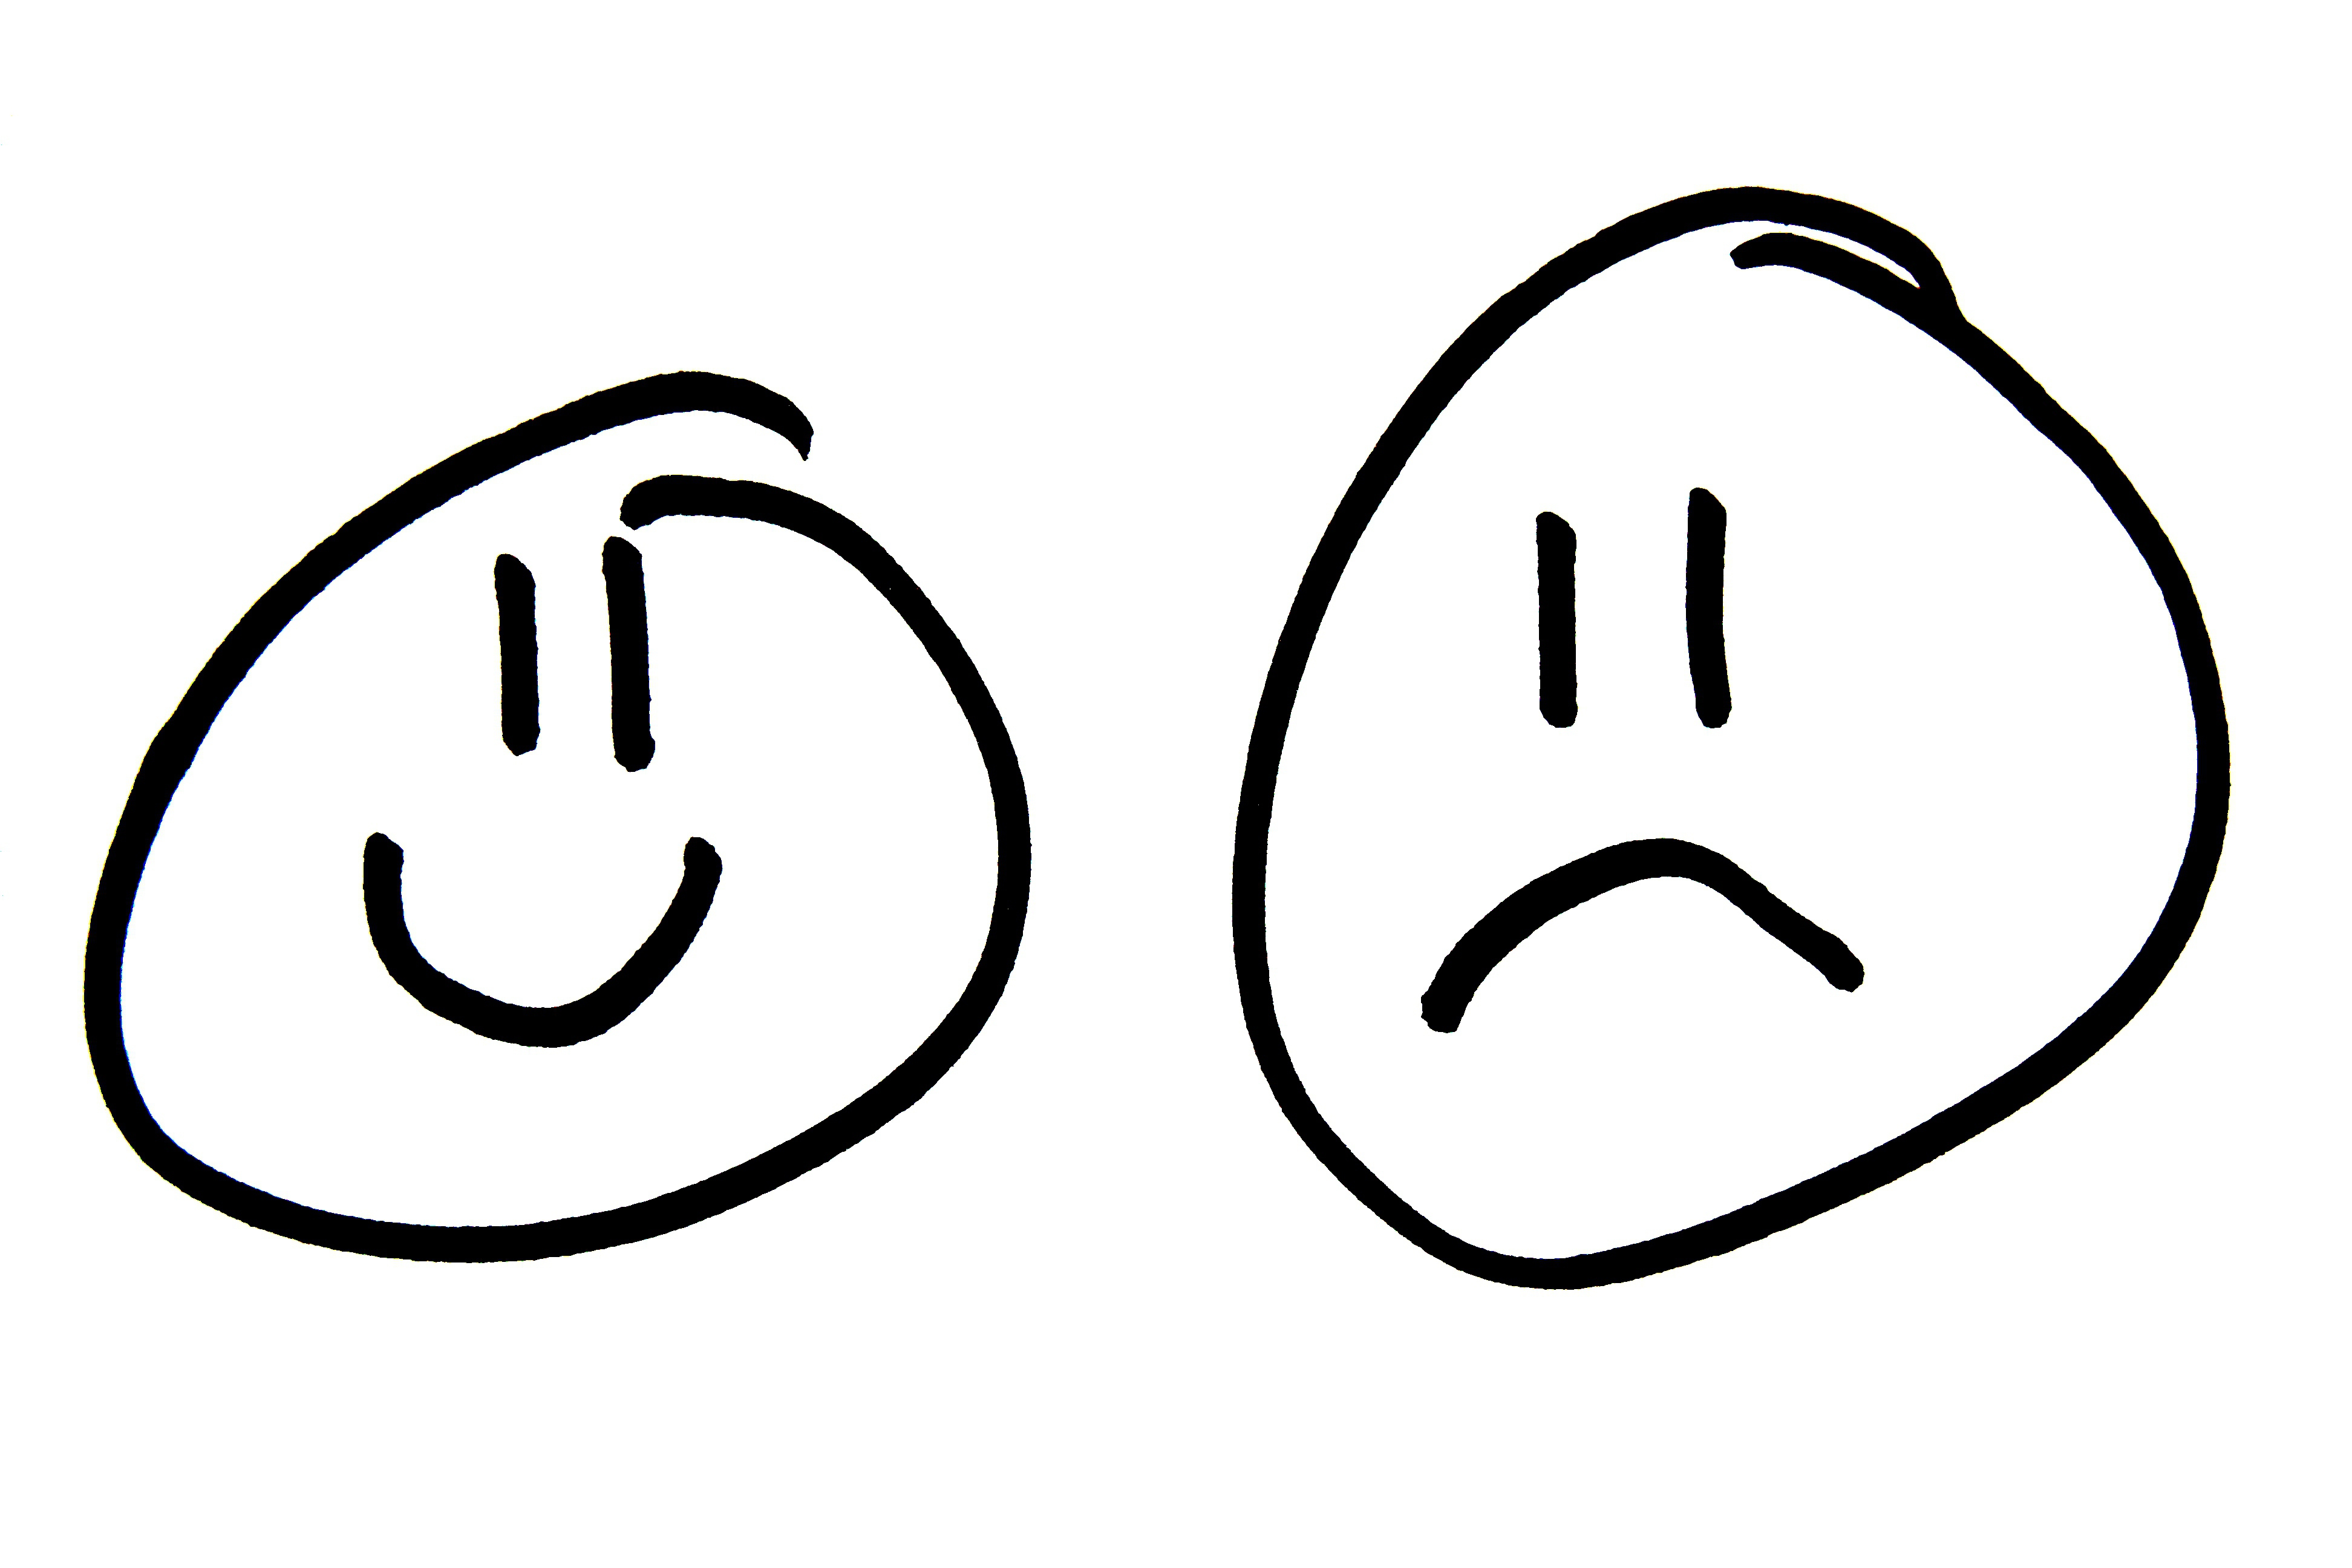 Smiley and sad faces clip art 3